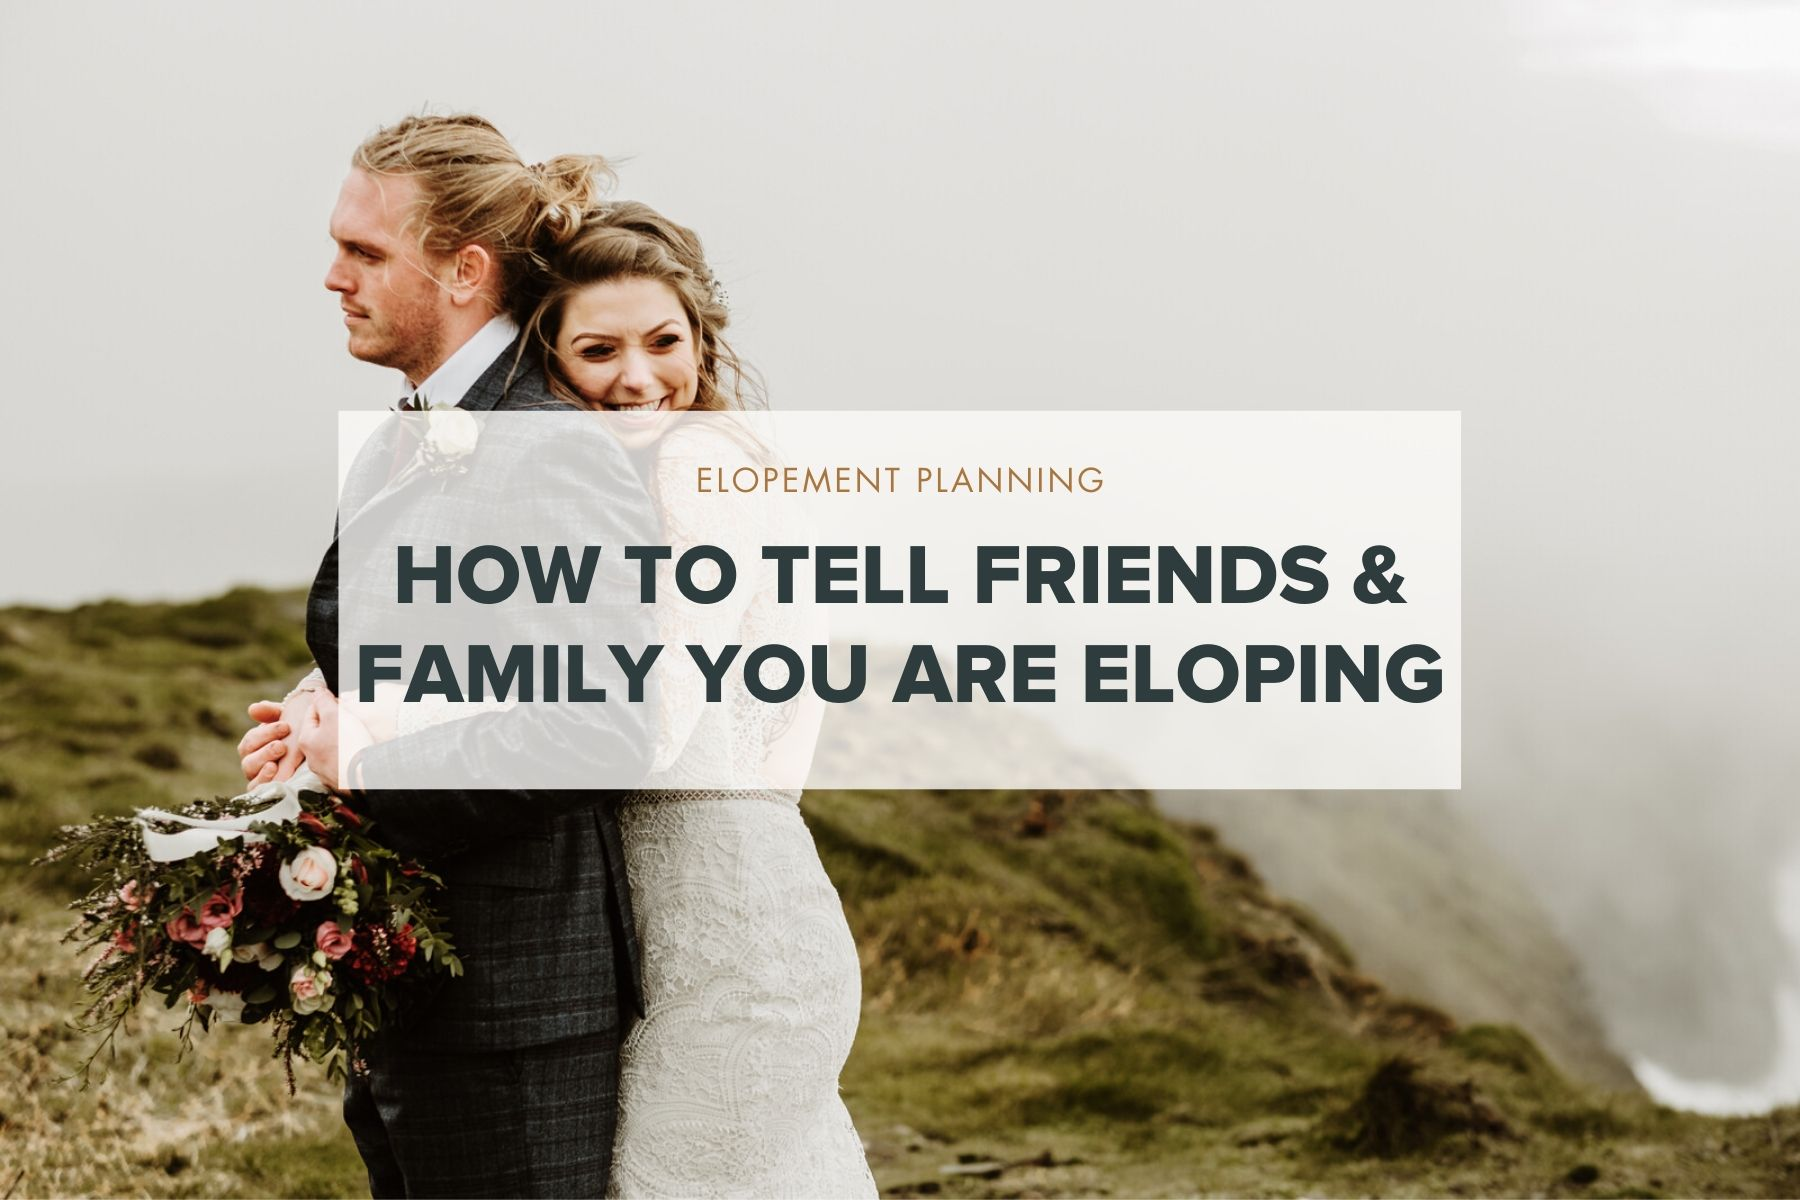 How to tell people you are eloping